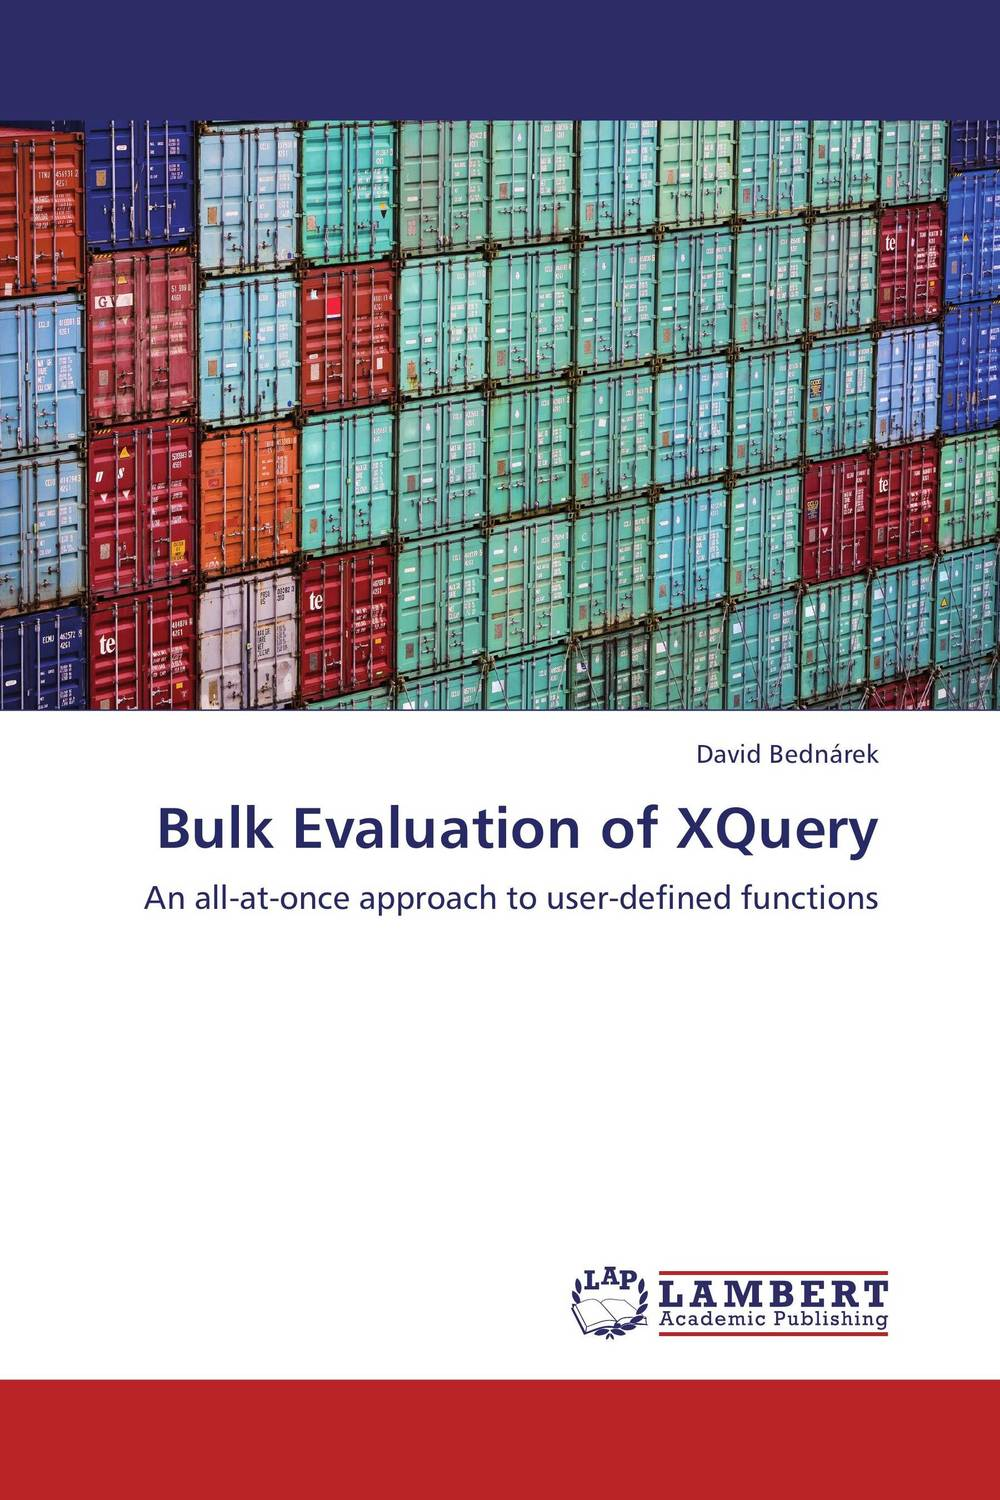 Bulk Evaluation of XQuery